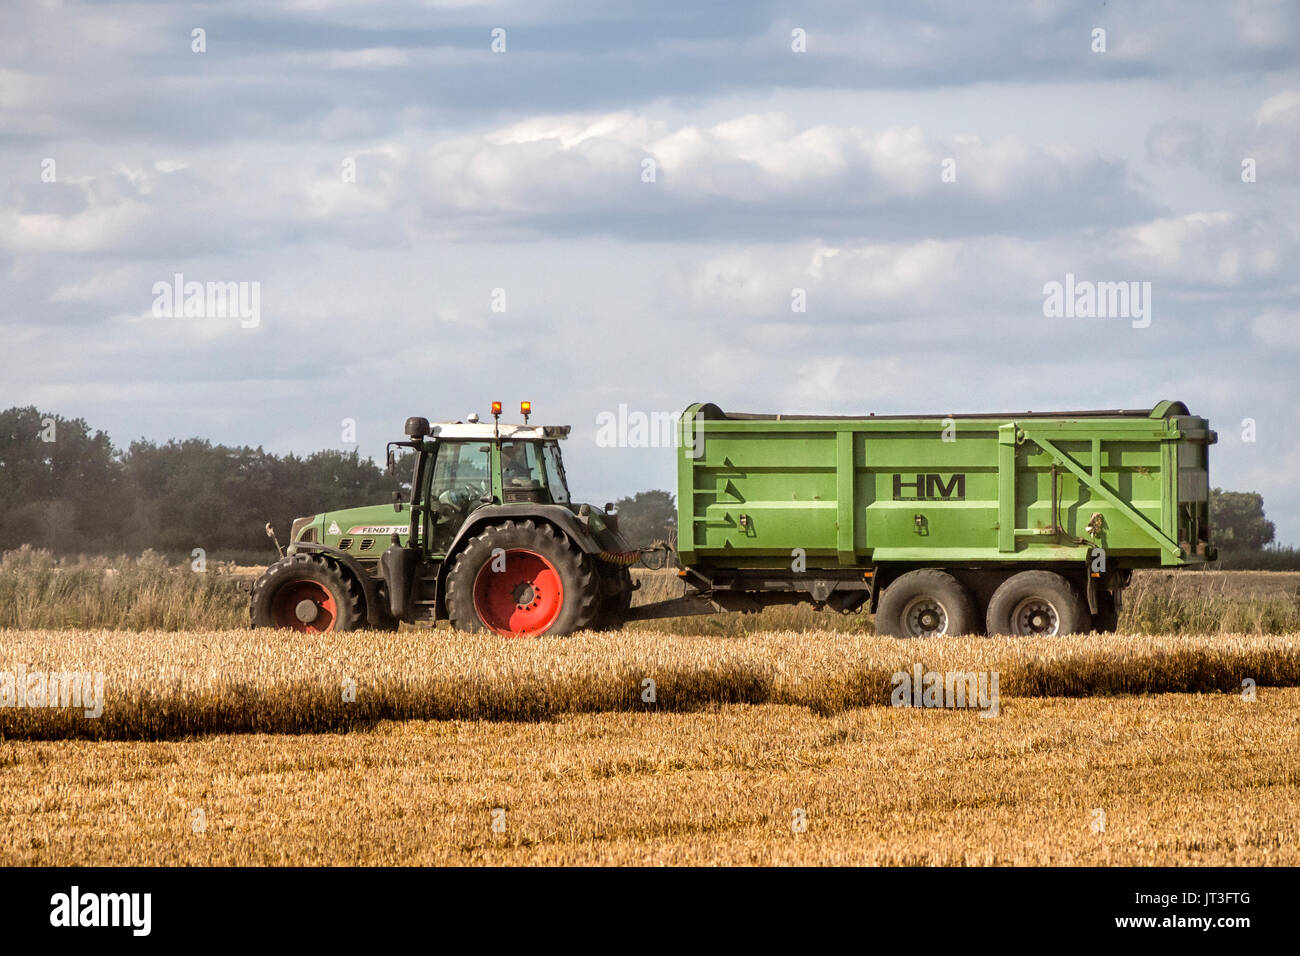 Tractor and Trailer waiting to be called to take-off harvested grain during Harvest. - Stock Image